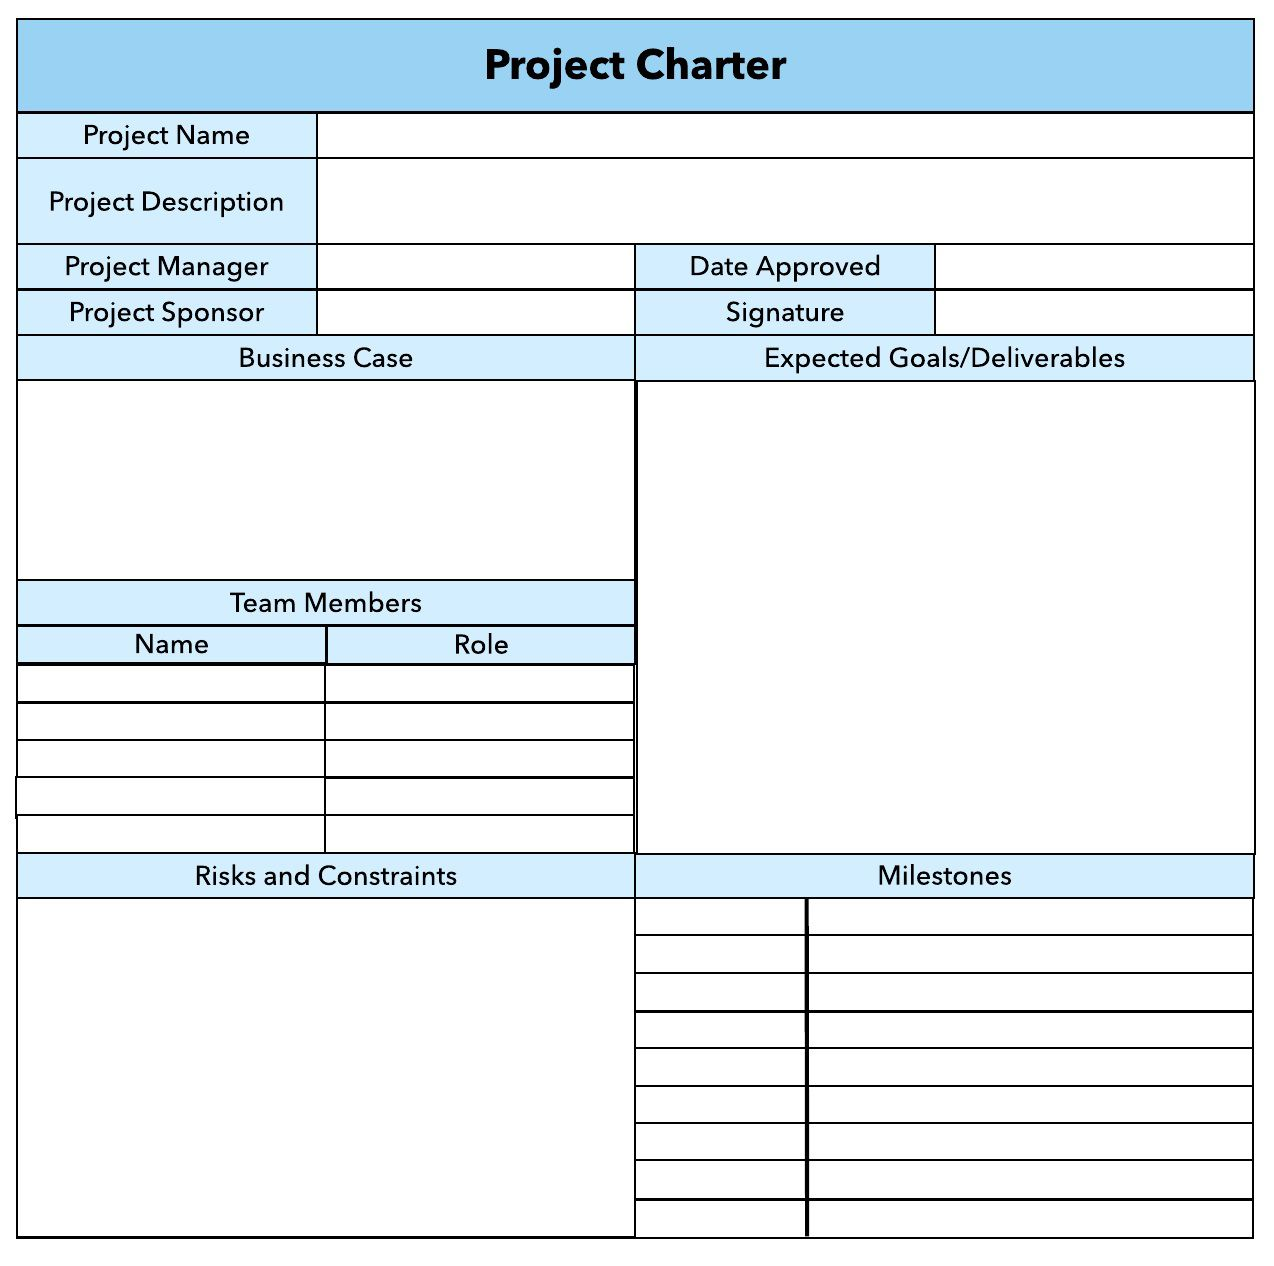 006 Top Pmbok Project Charter Template Image  Pmi Agile WordFull